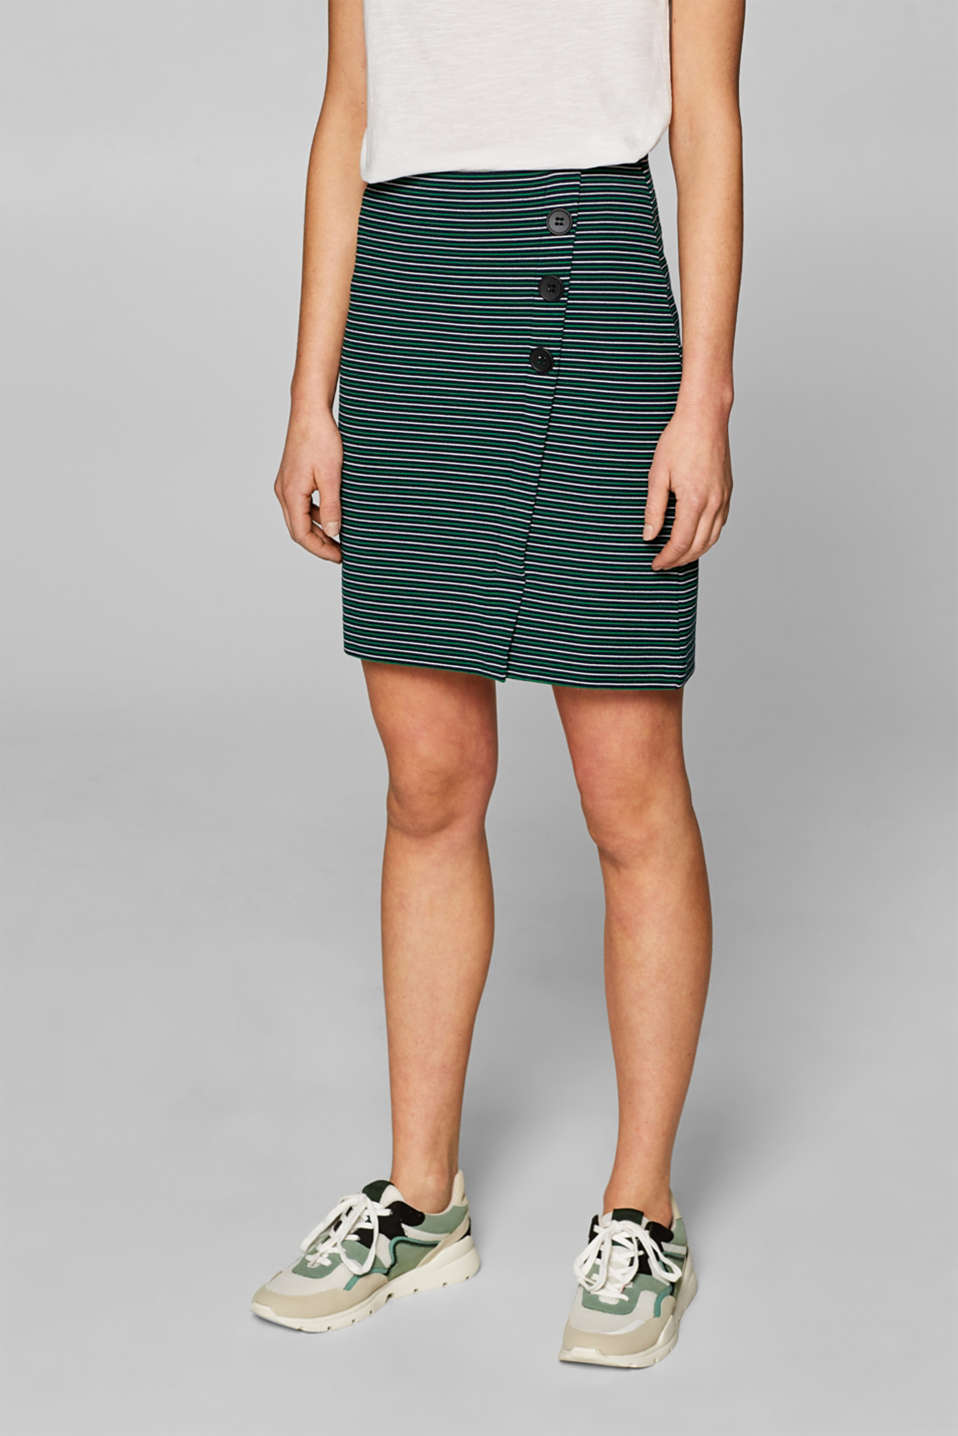 Stretch jersey skirt with a button placket, NAVY, detail image number 5